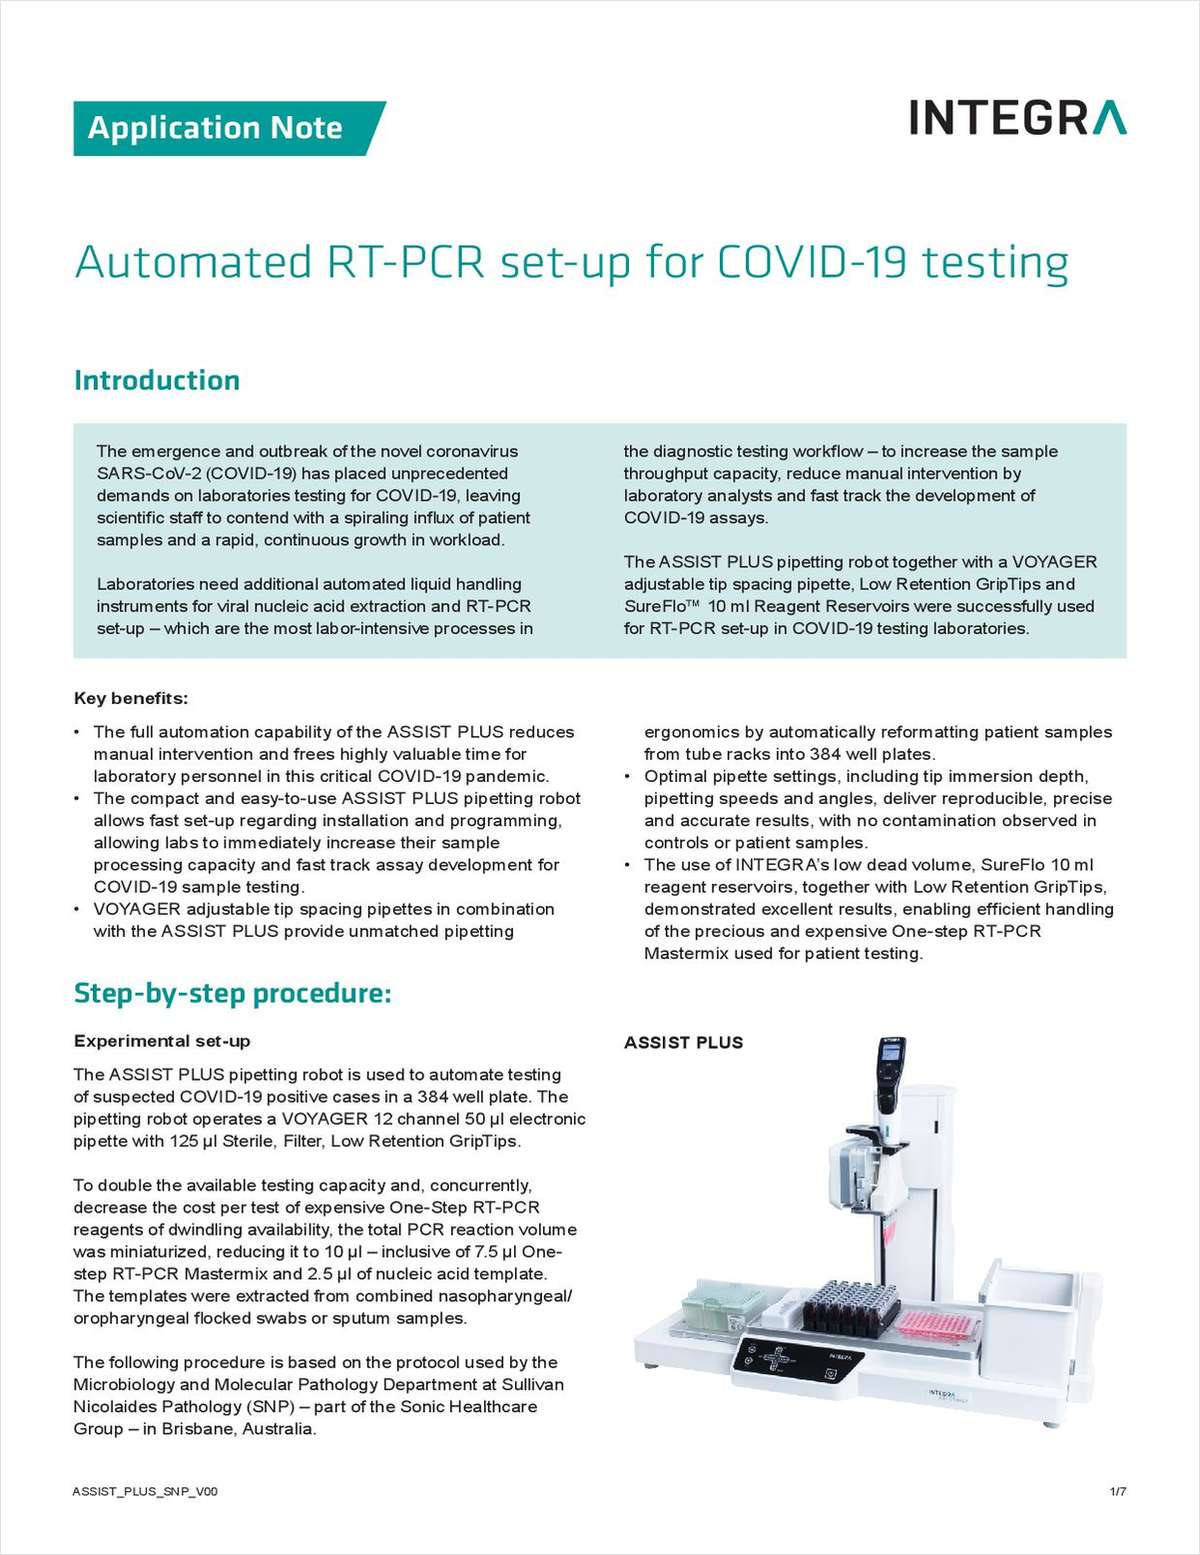 Automated RT-PCR Setup for COVID-19 Testing